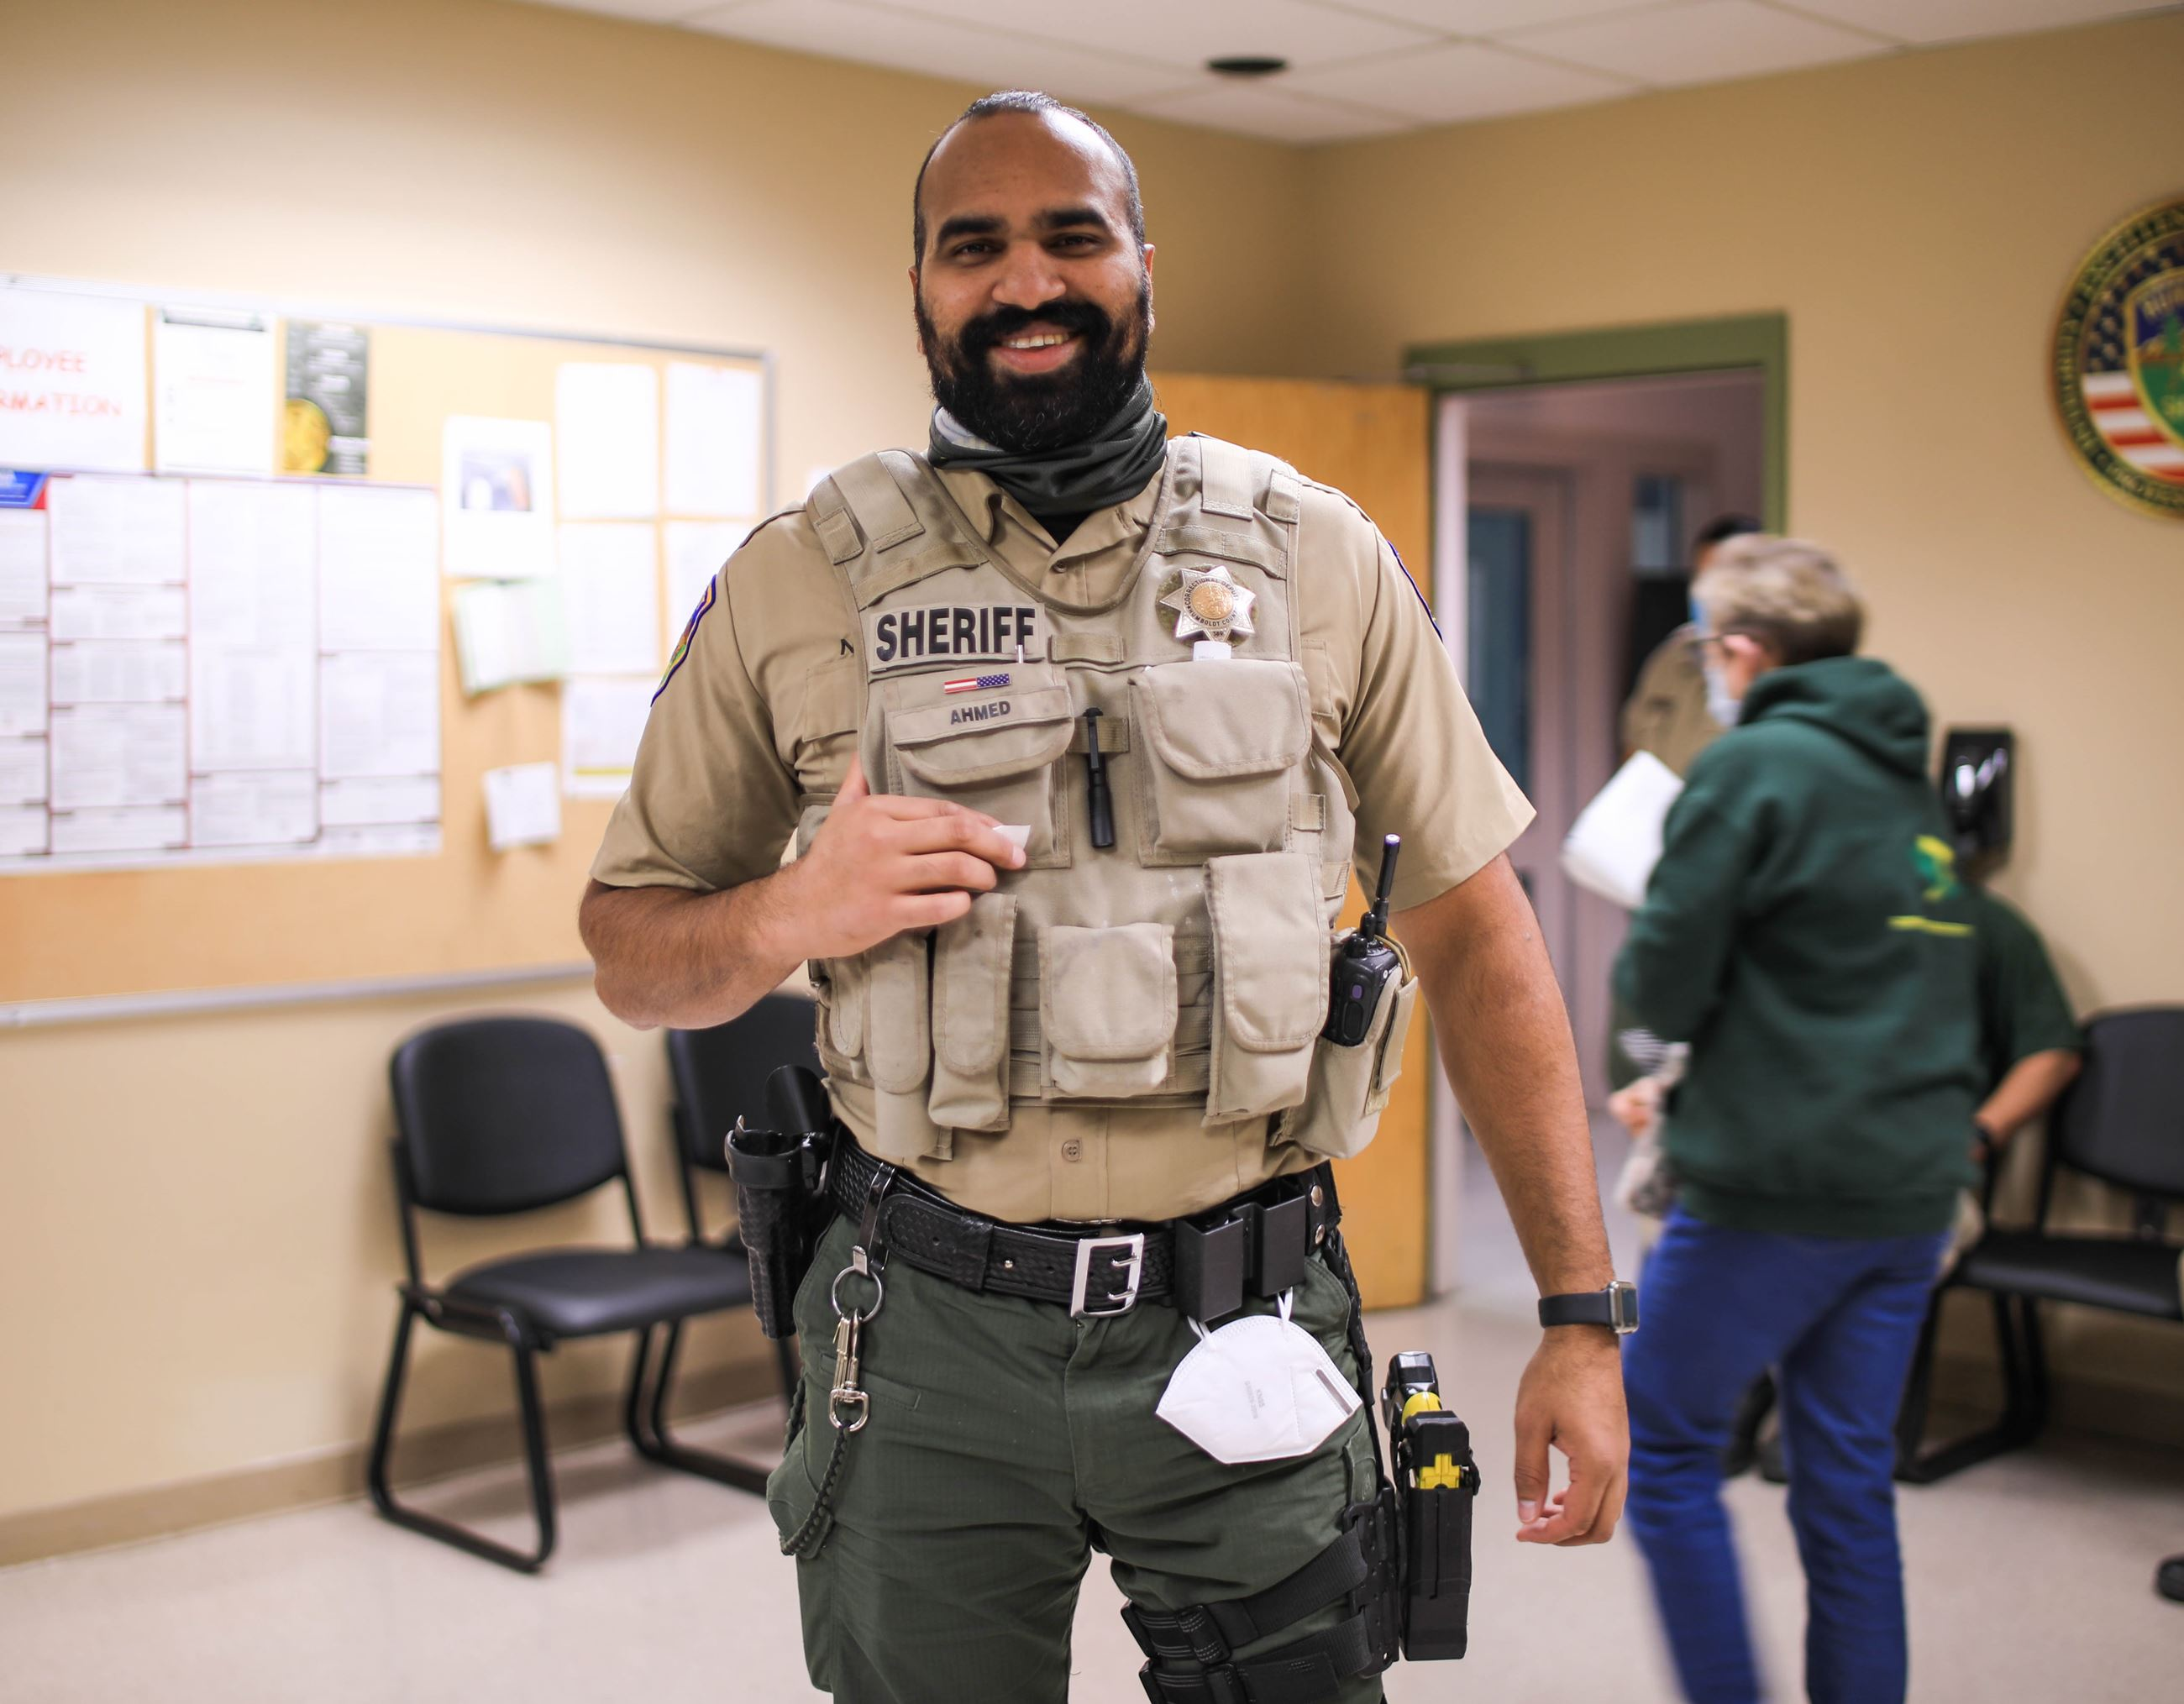 Correctional Deputy Ahmed displays his beard for No Shave November